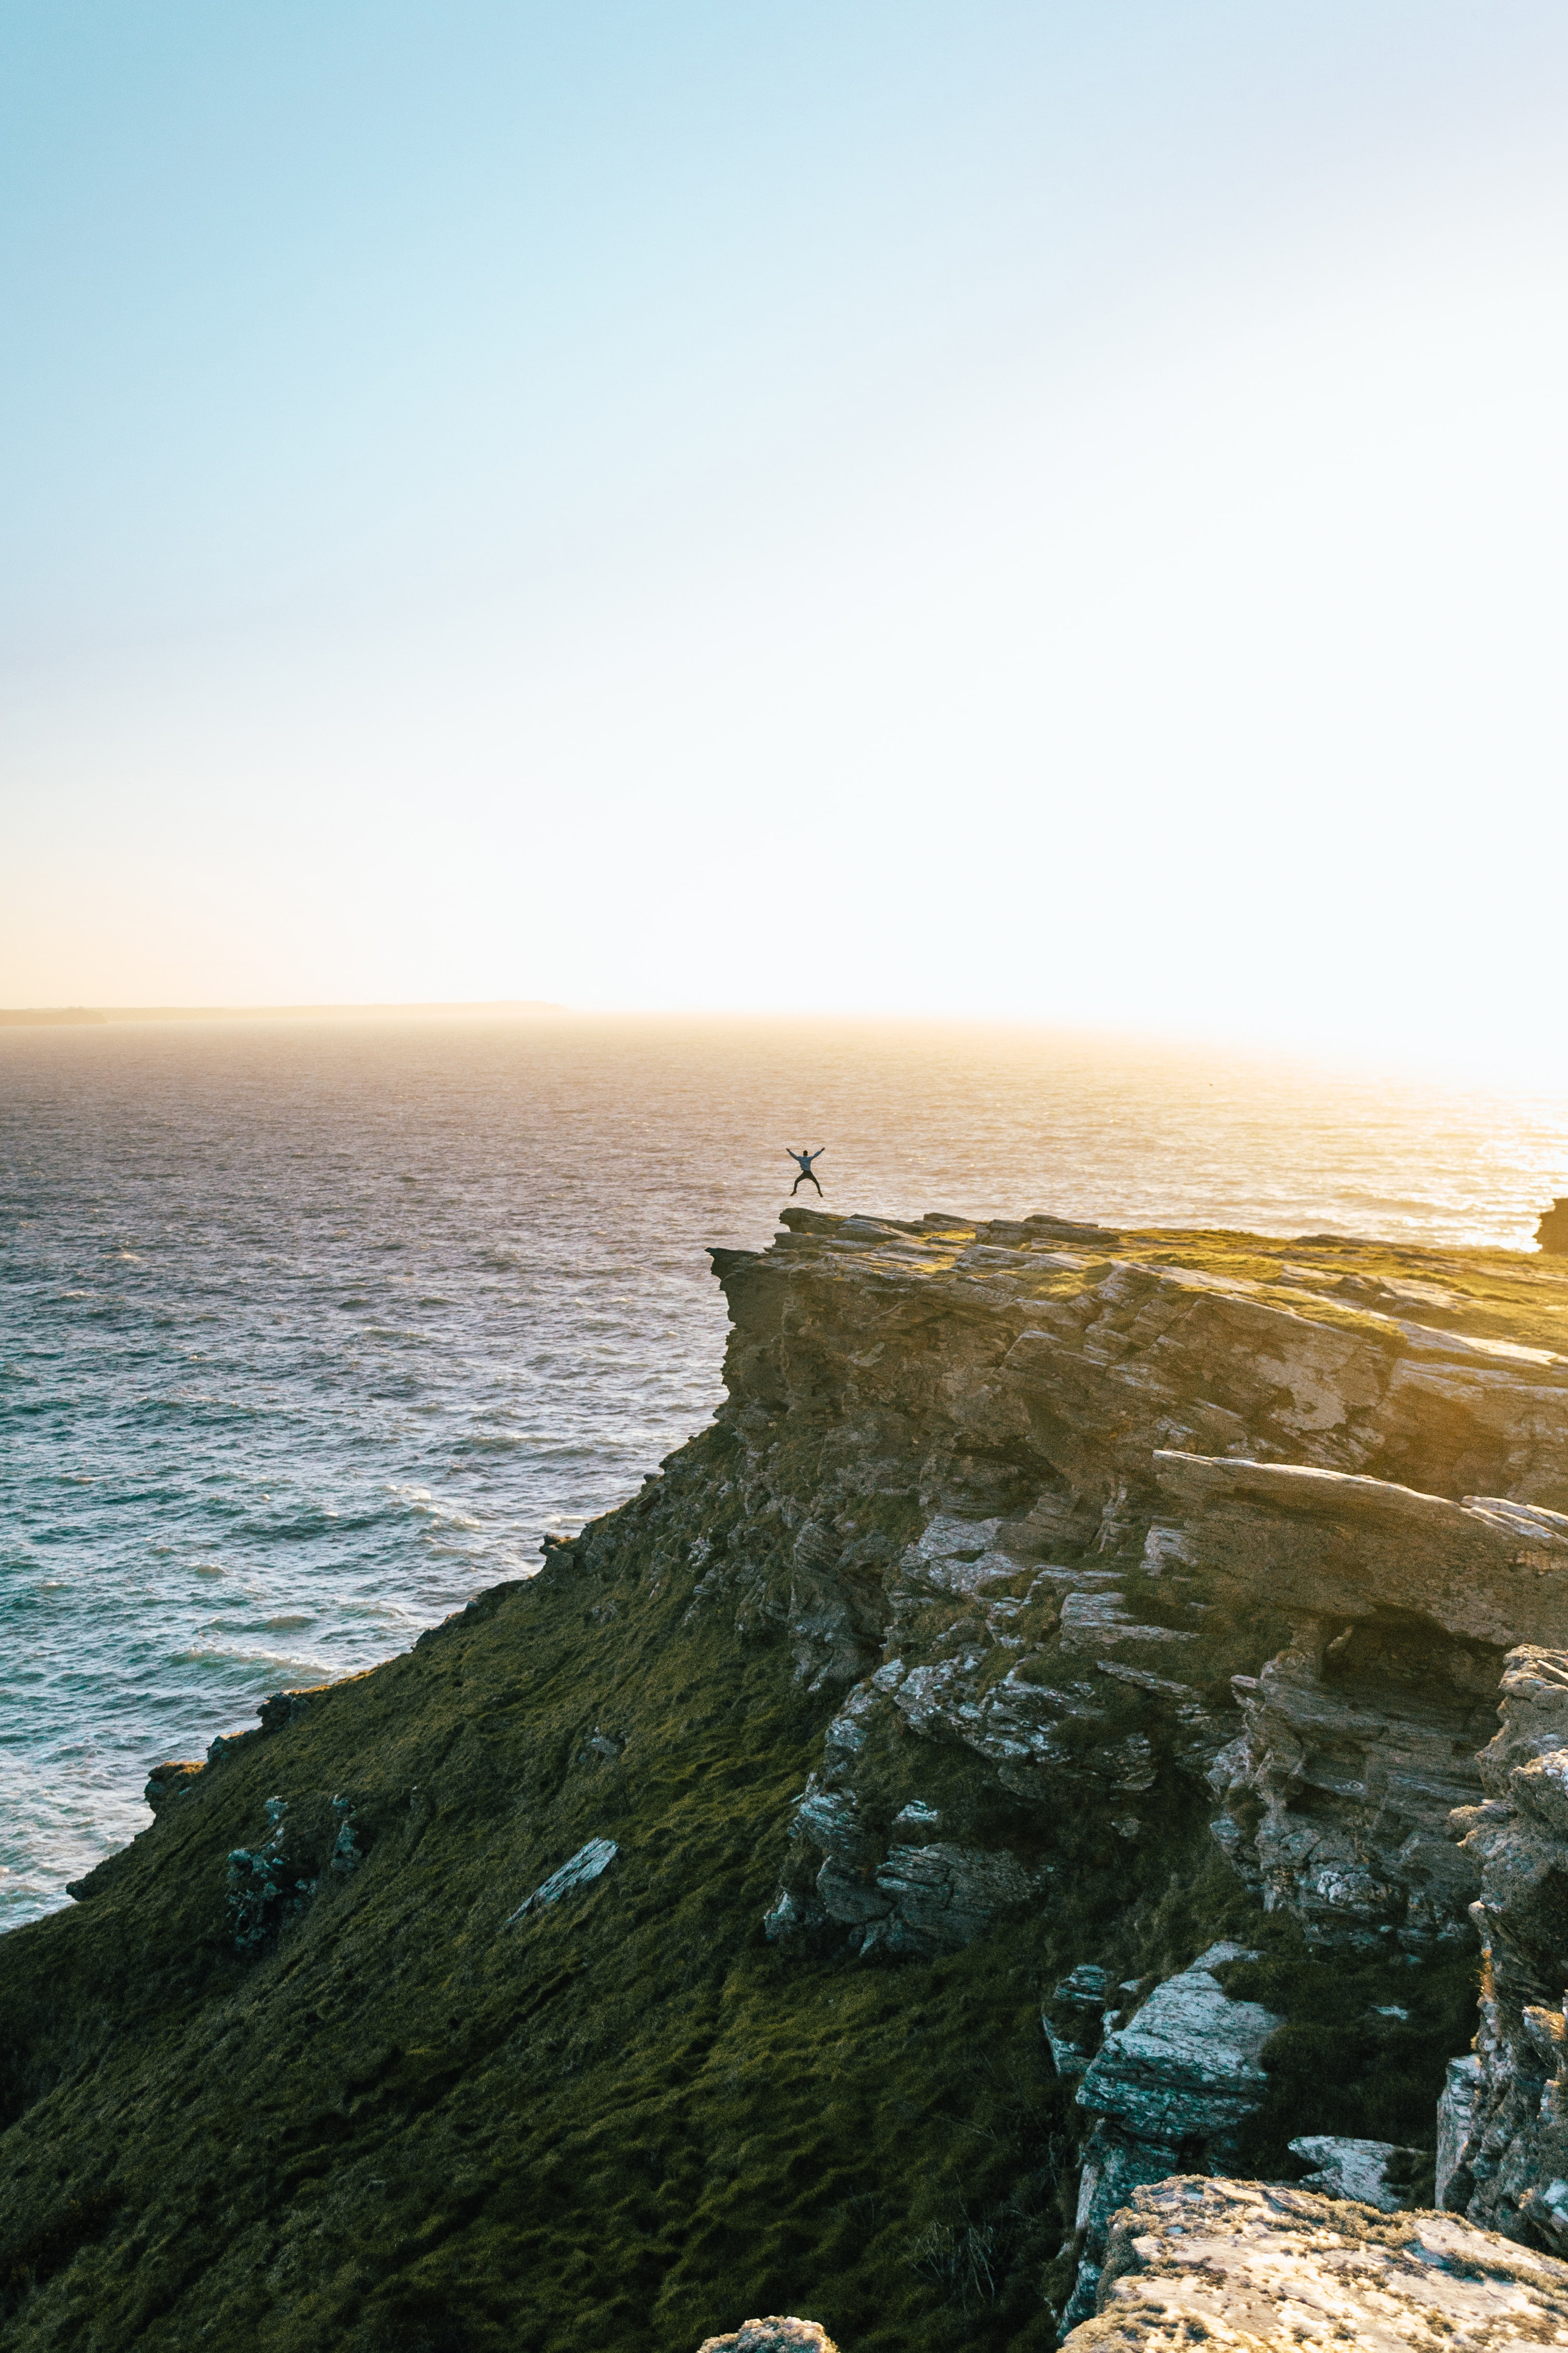 A man jumping in the air at the edge of a cliff at sunset in Tintagel